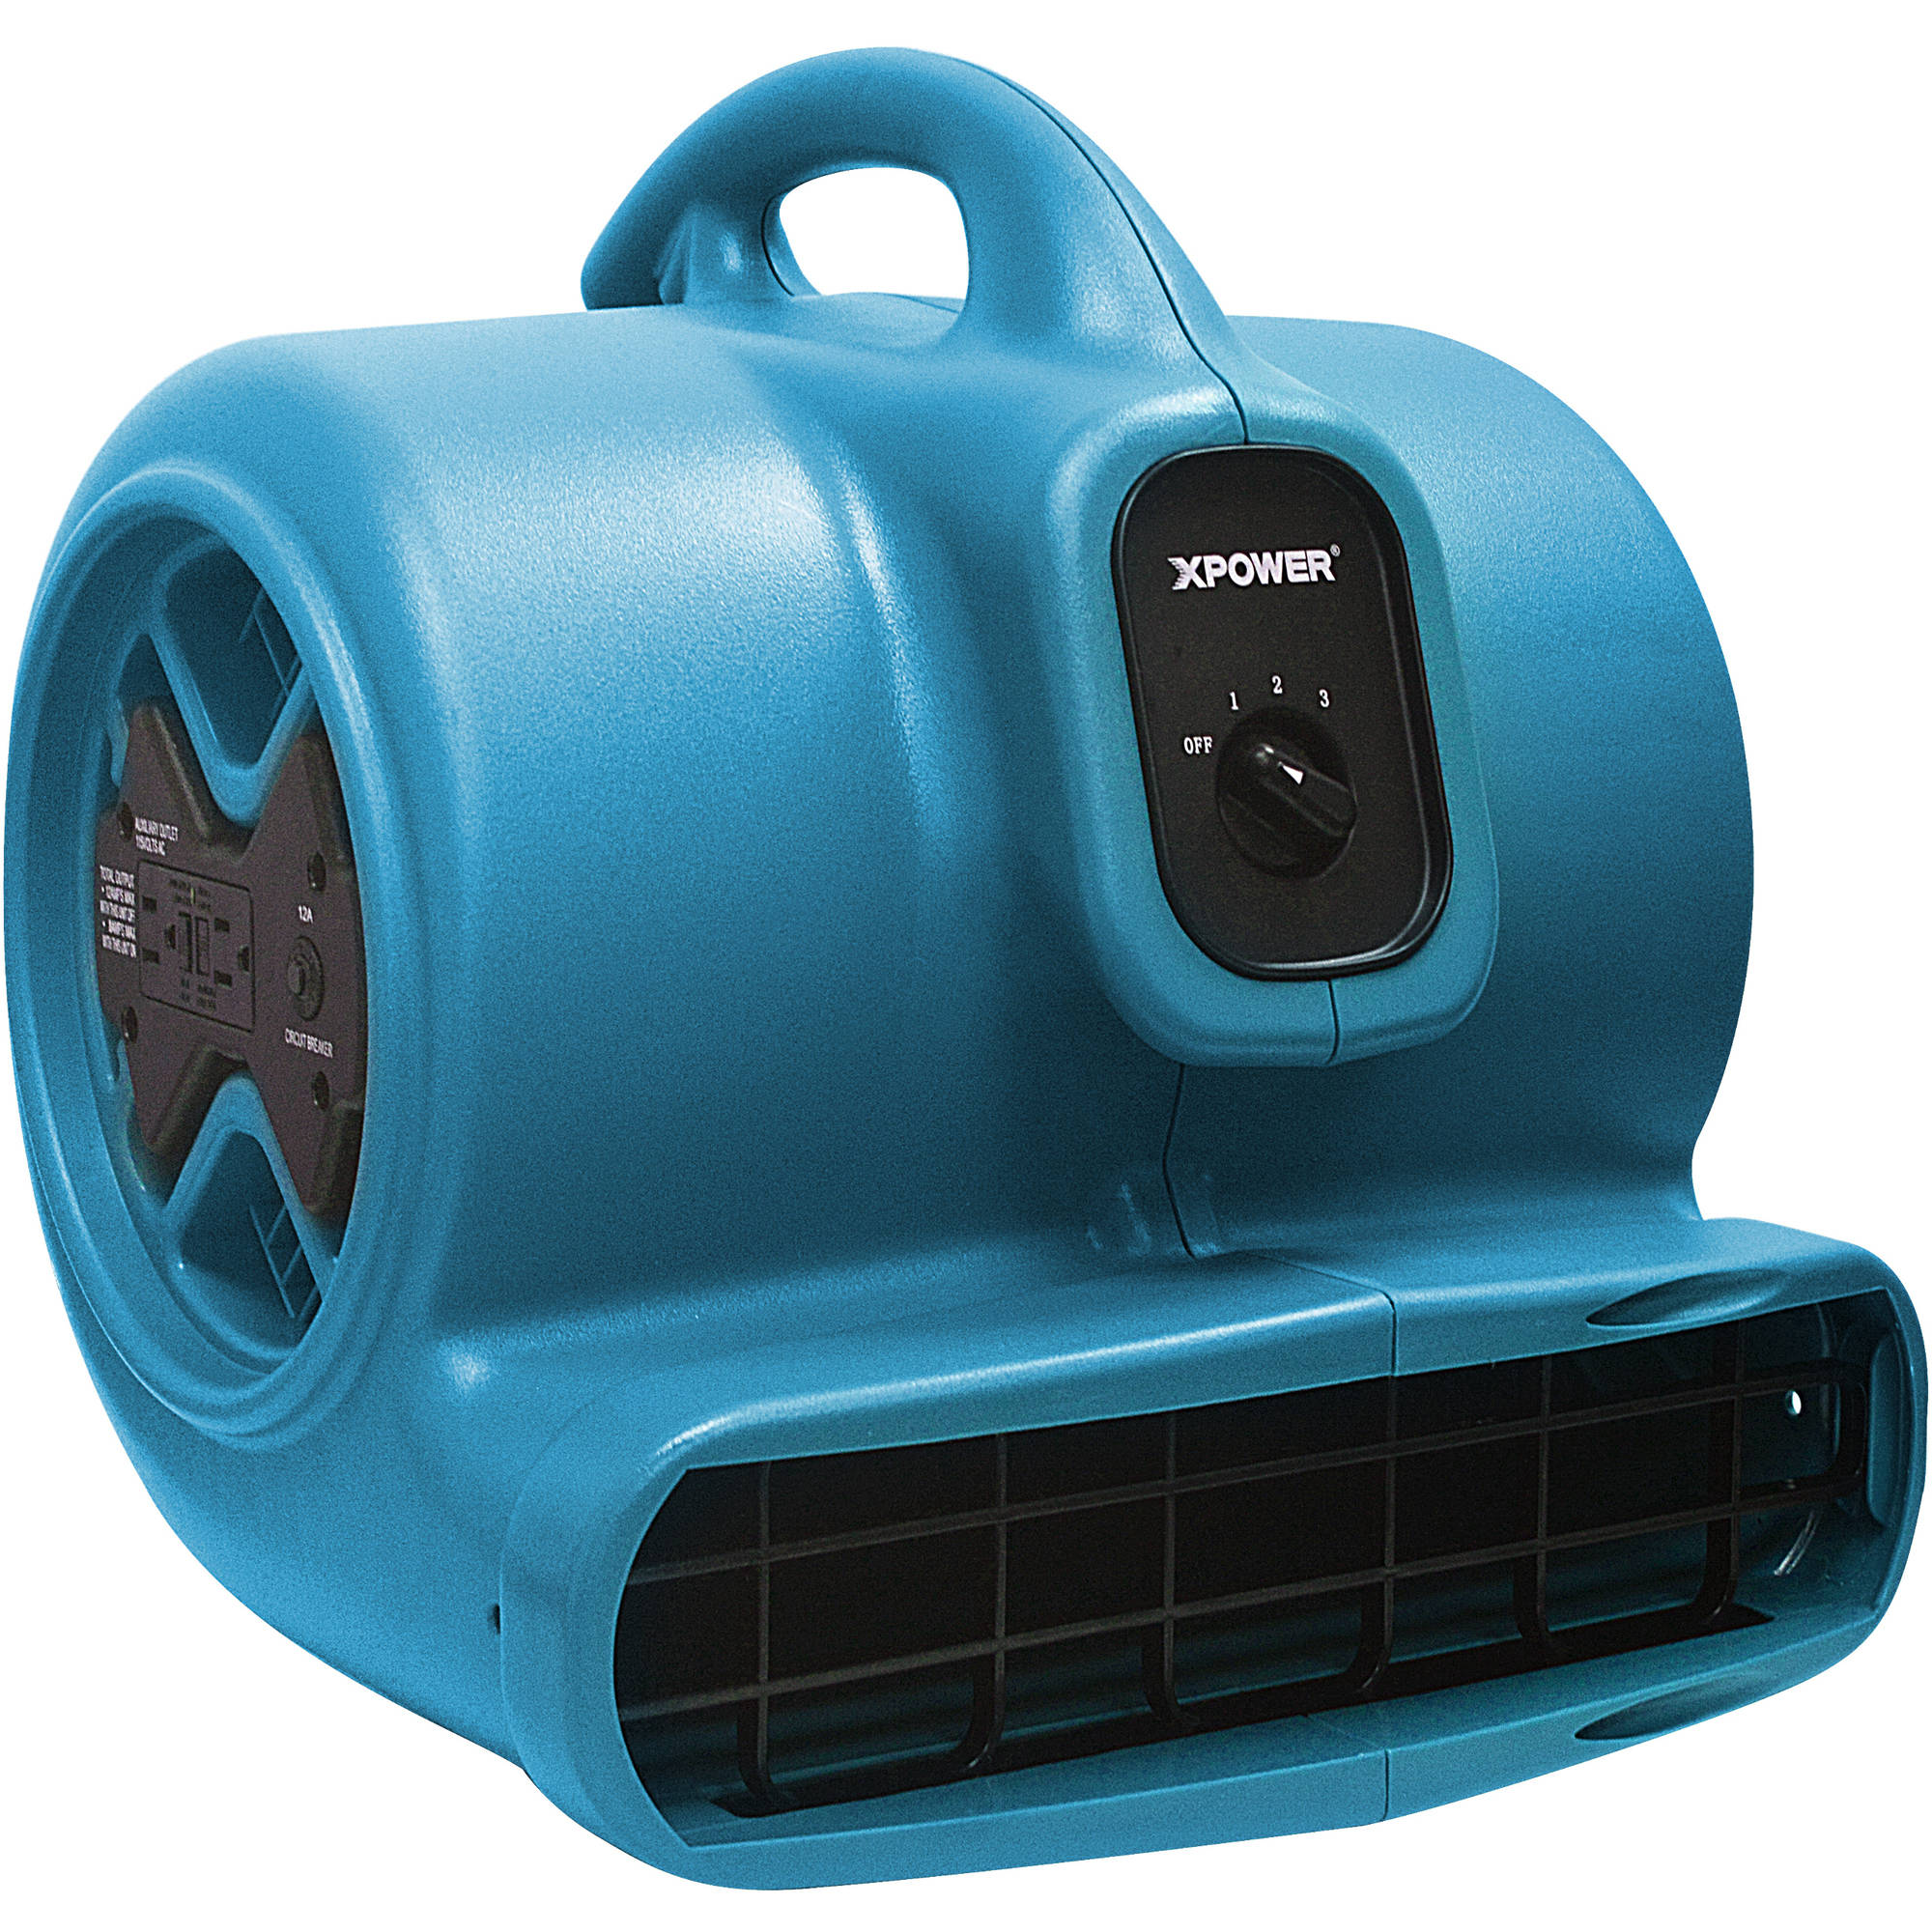 XPOWER X-600A 1/3HP Air Mover, Blue